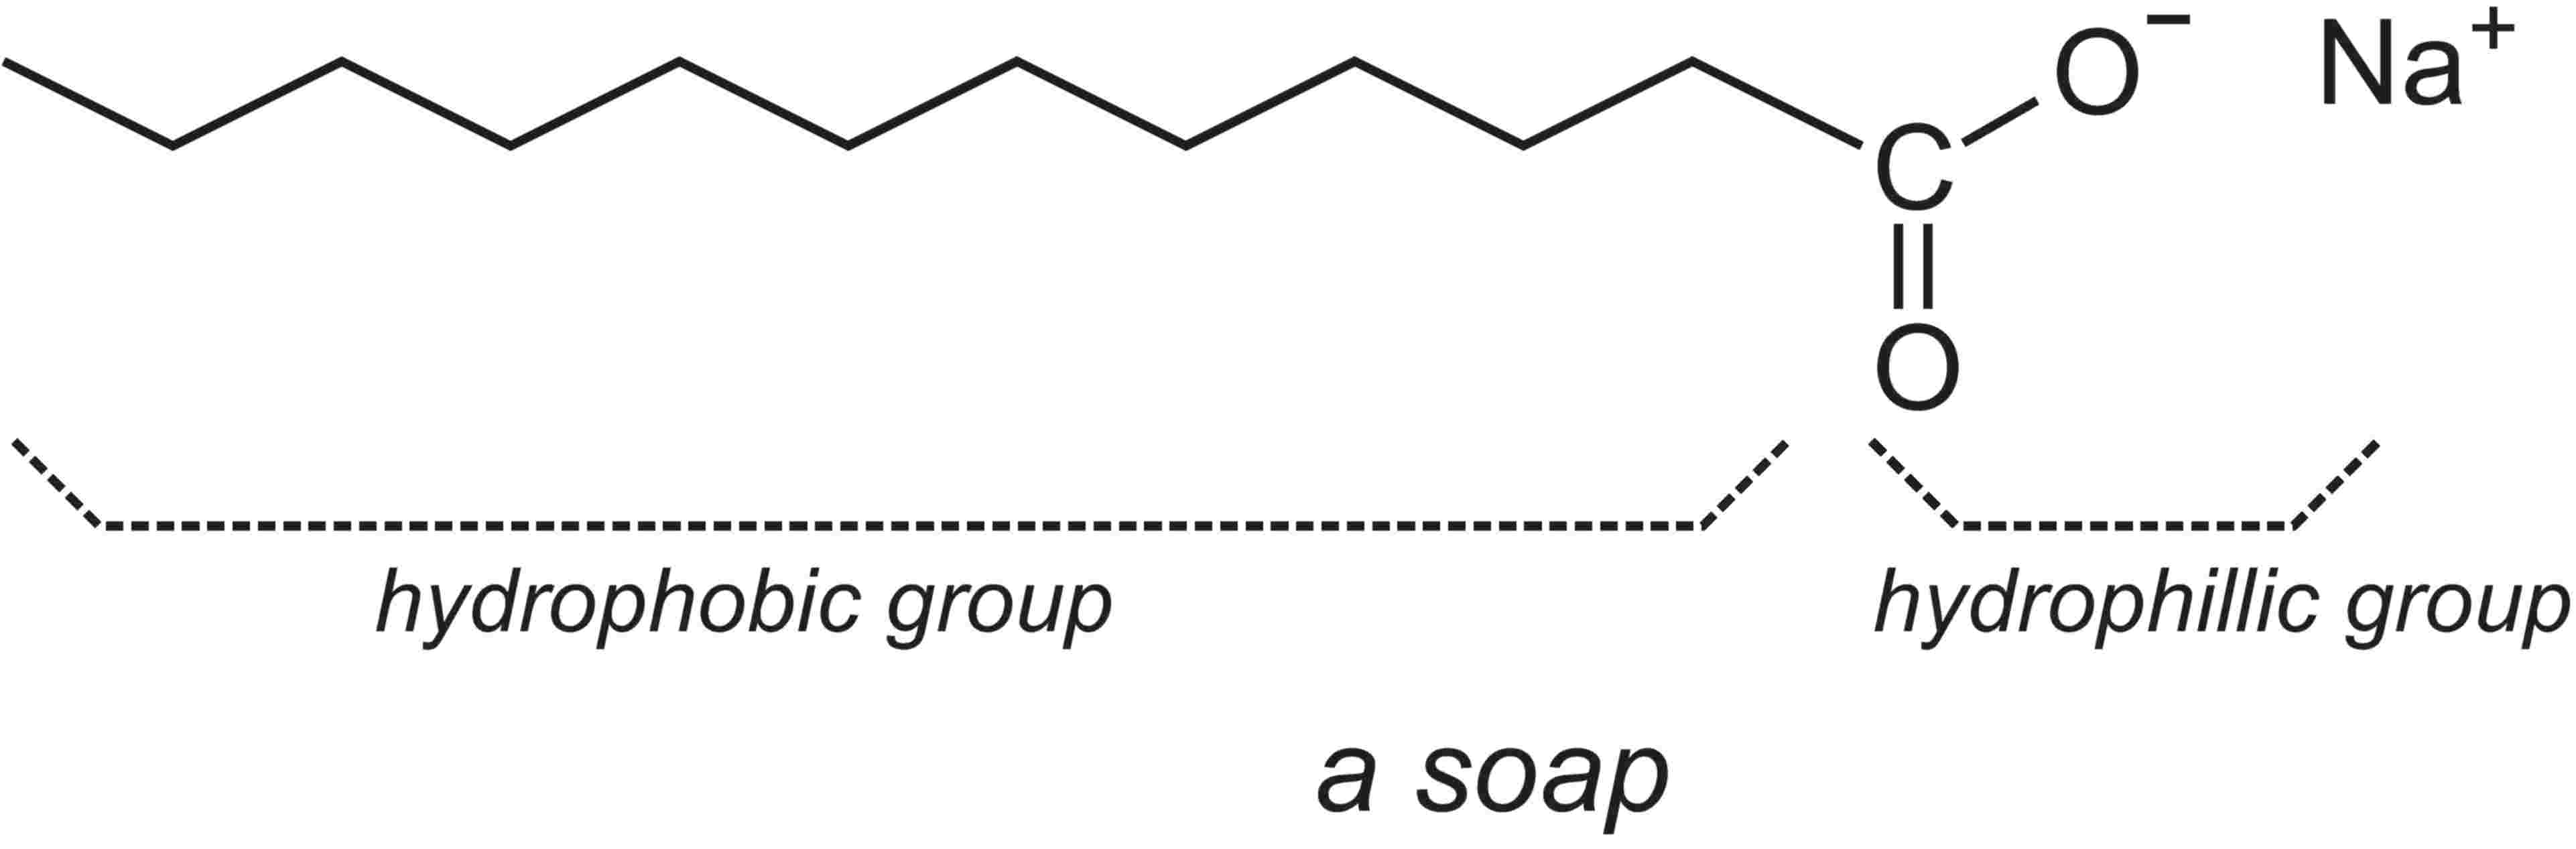 Chemical Properties Of Soaps And Detergents